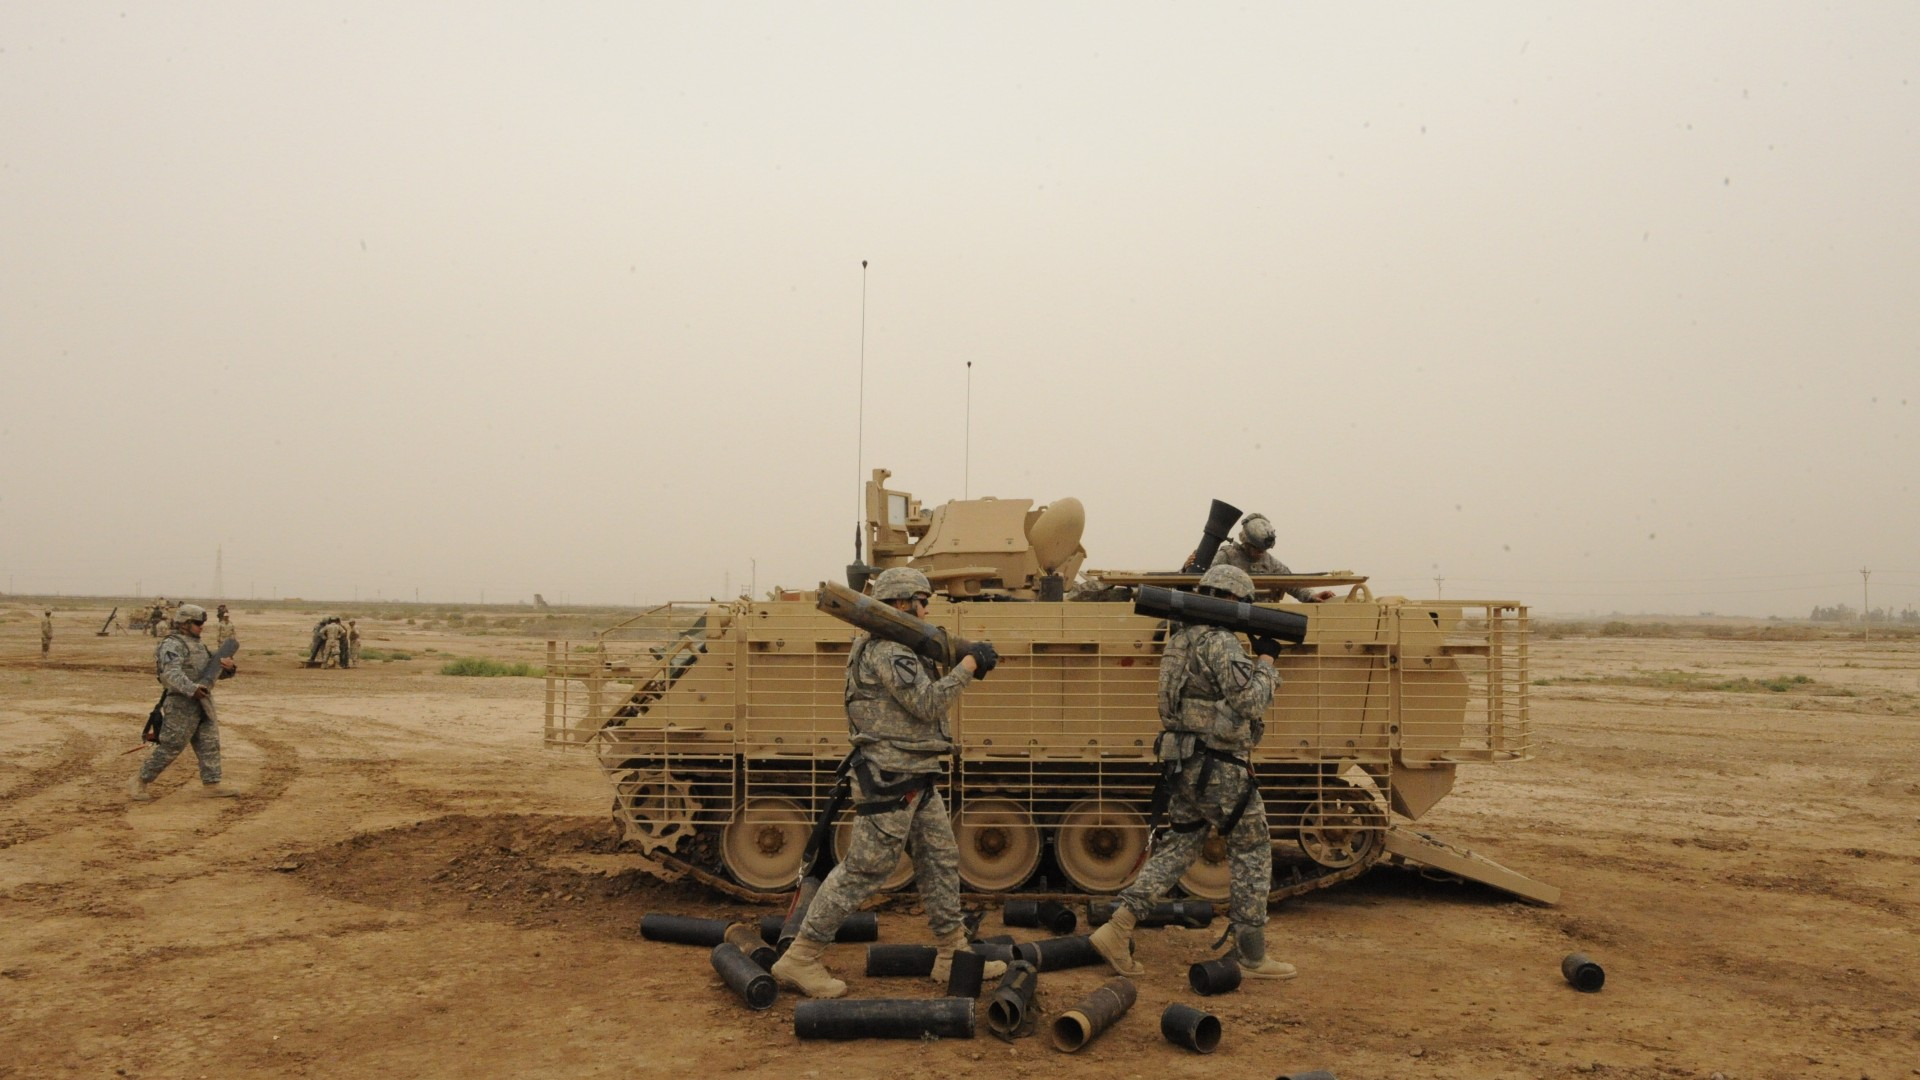 M113, Bradley, armored personnel carrier, soldier, APC, ACAV, M113A3, U.S. Army, firing (horizontal)